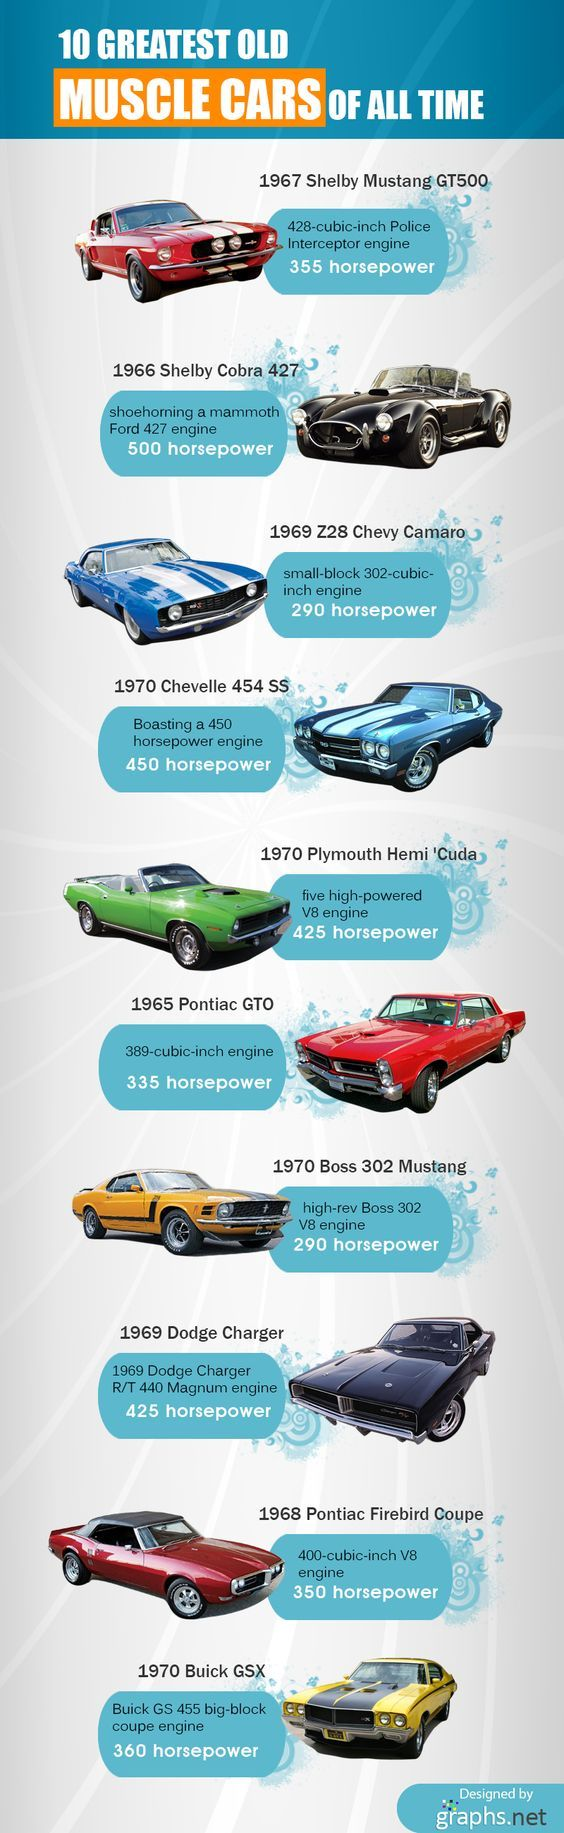 14 best Classic American Muscle Cars images on Pinterest ...